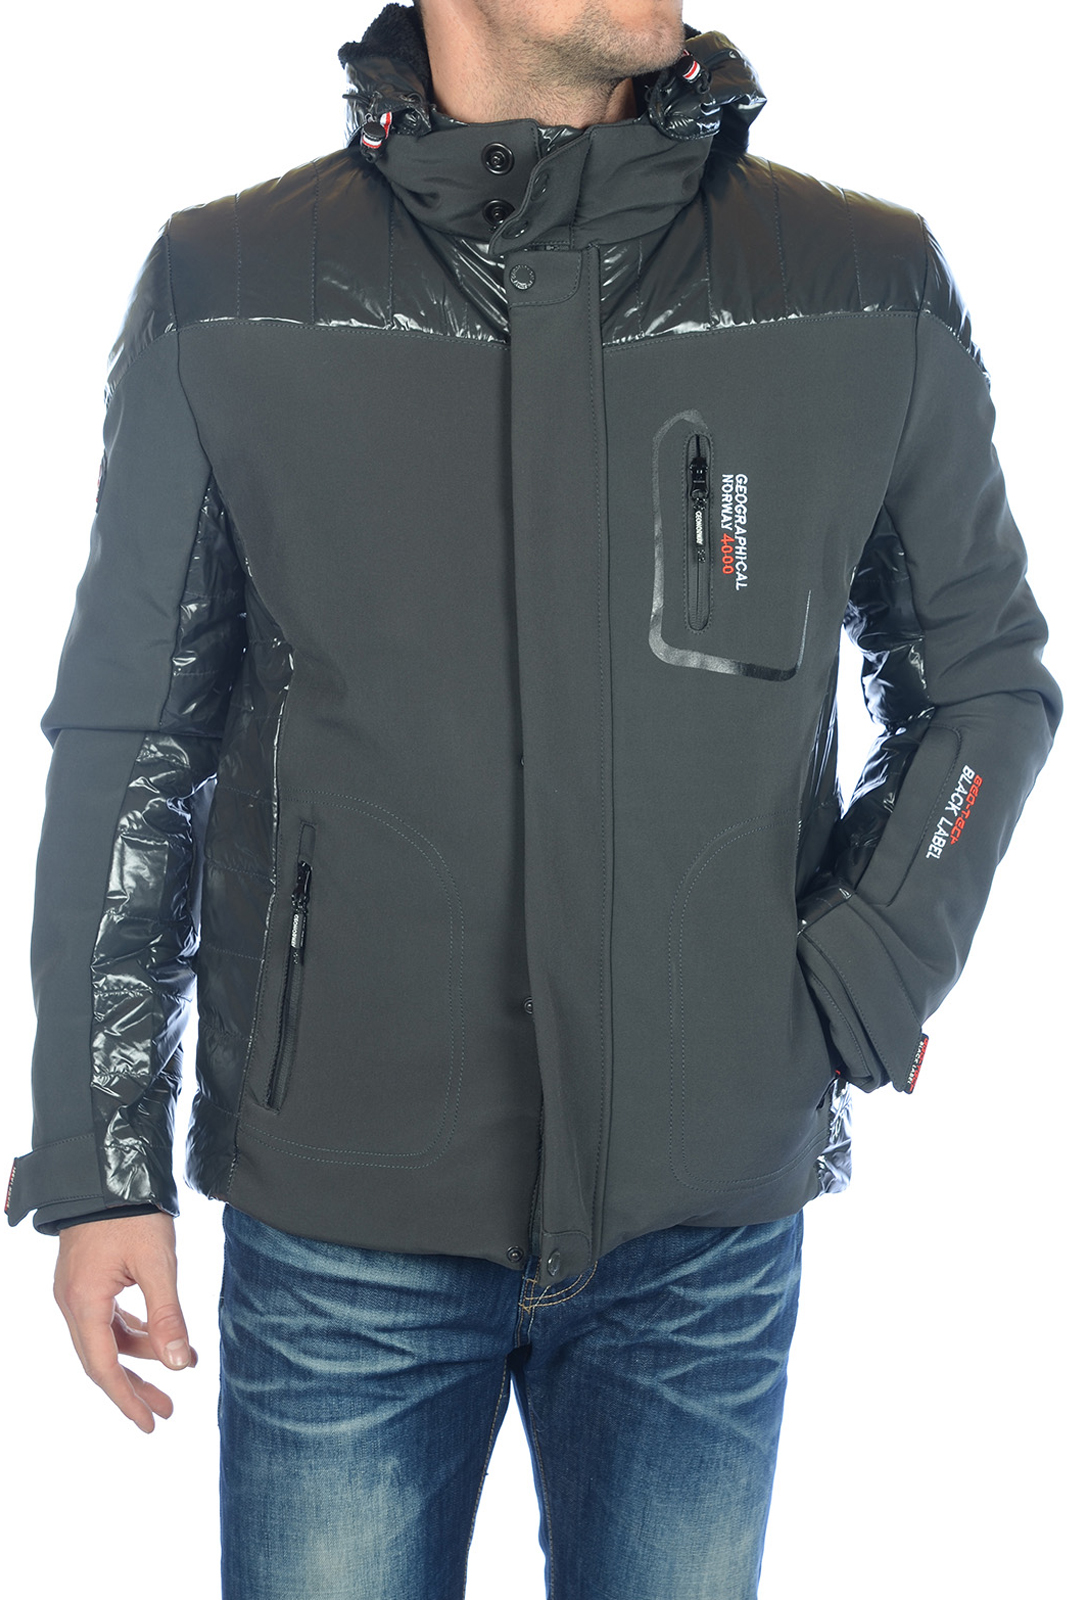 Veste / Blouson Geographical Norway Homme S